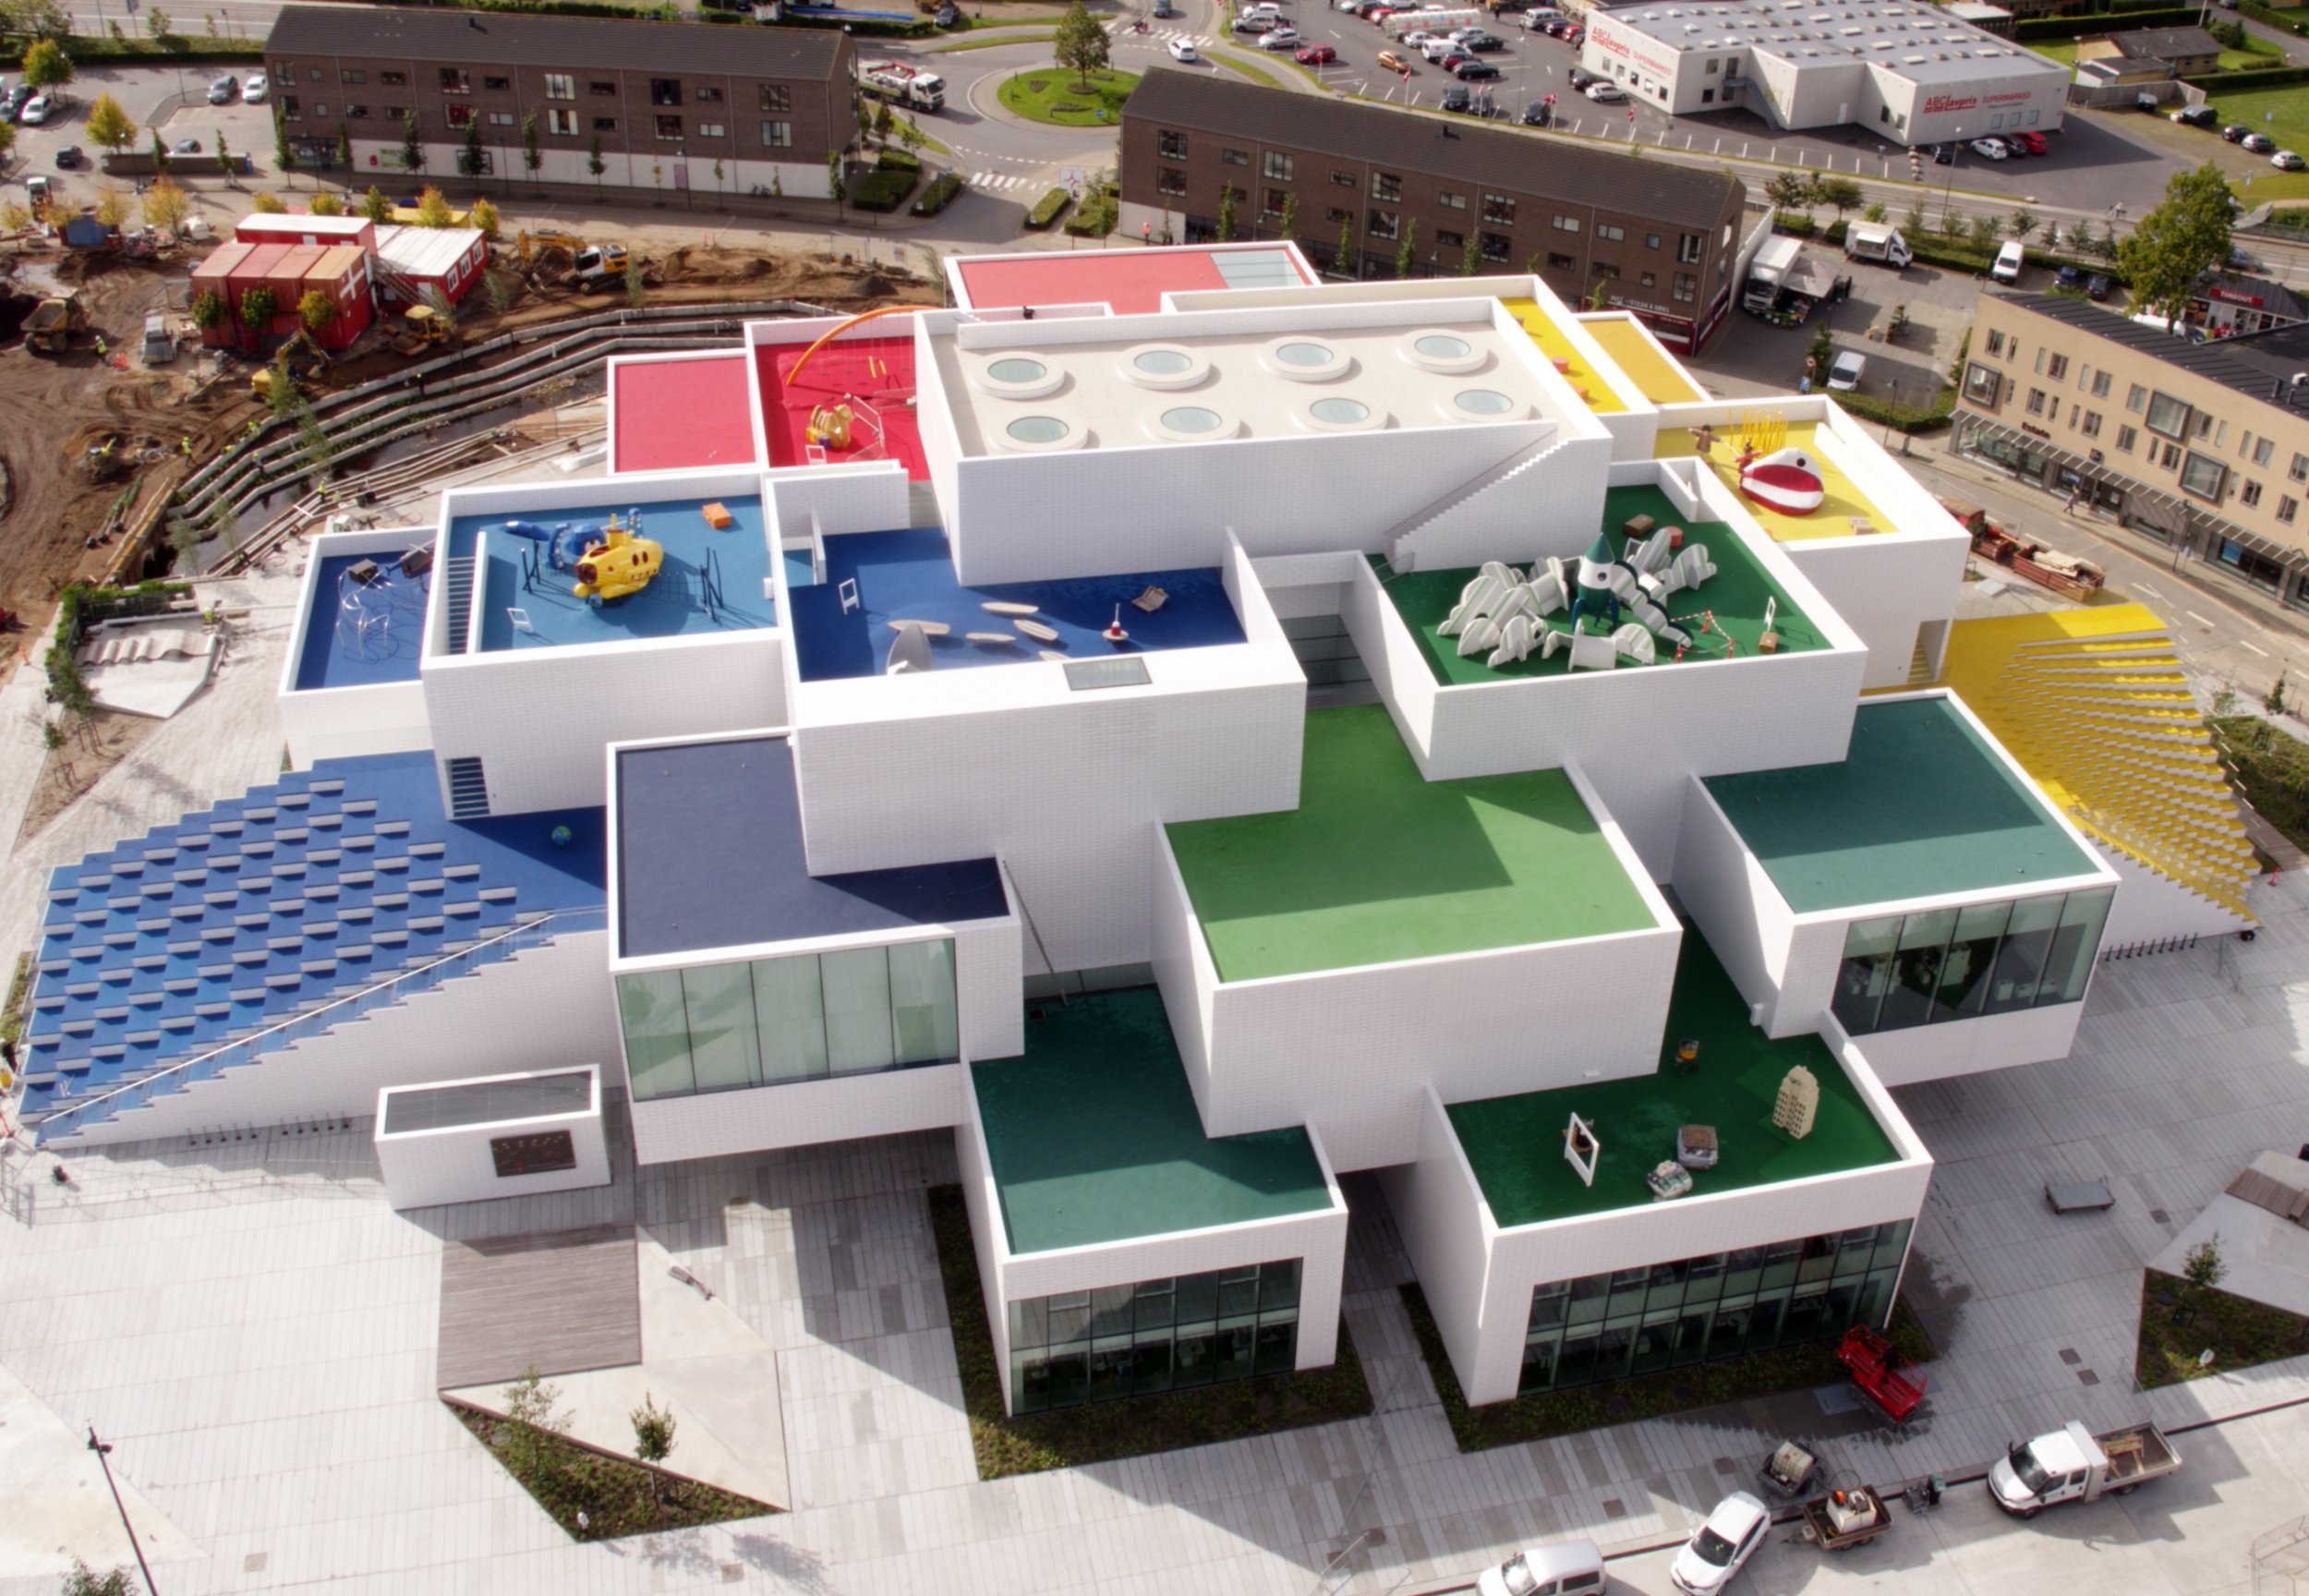 A massive new Lego House has opened in Denmark